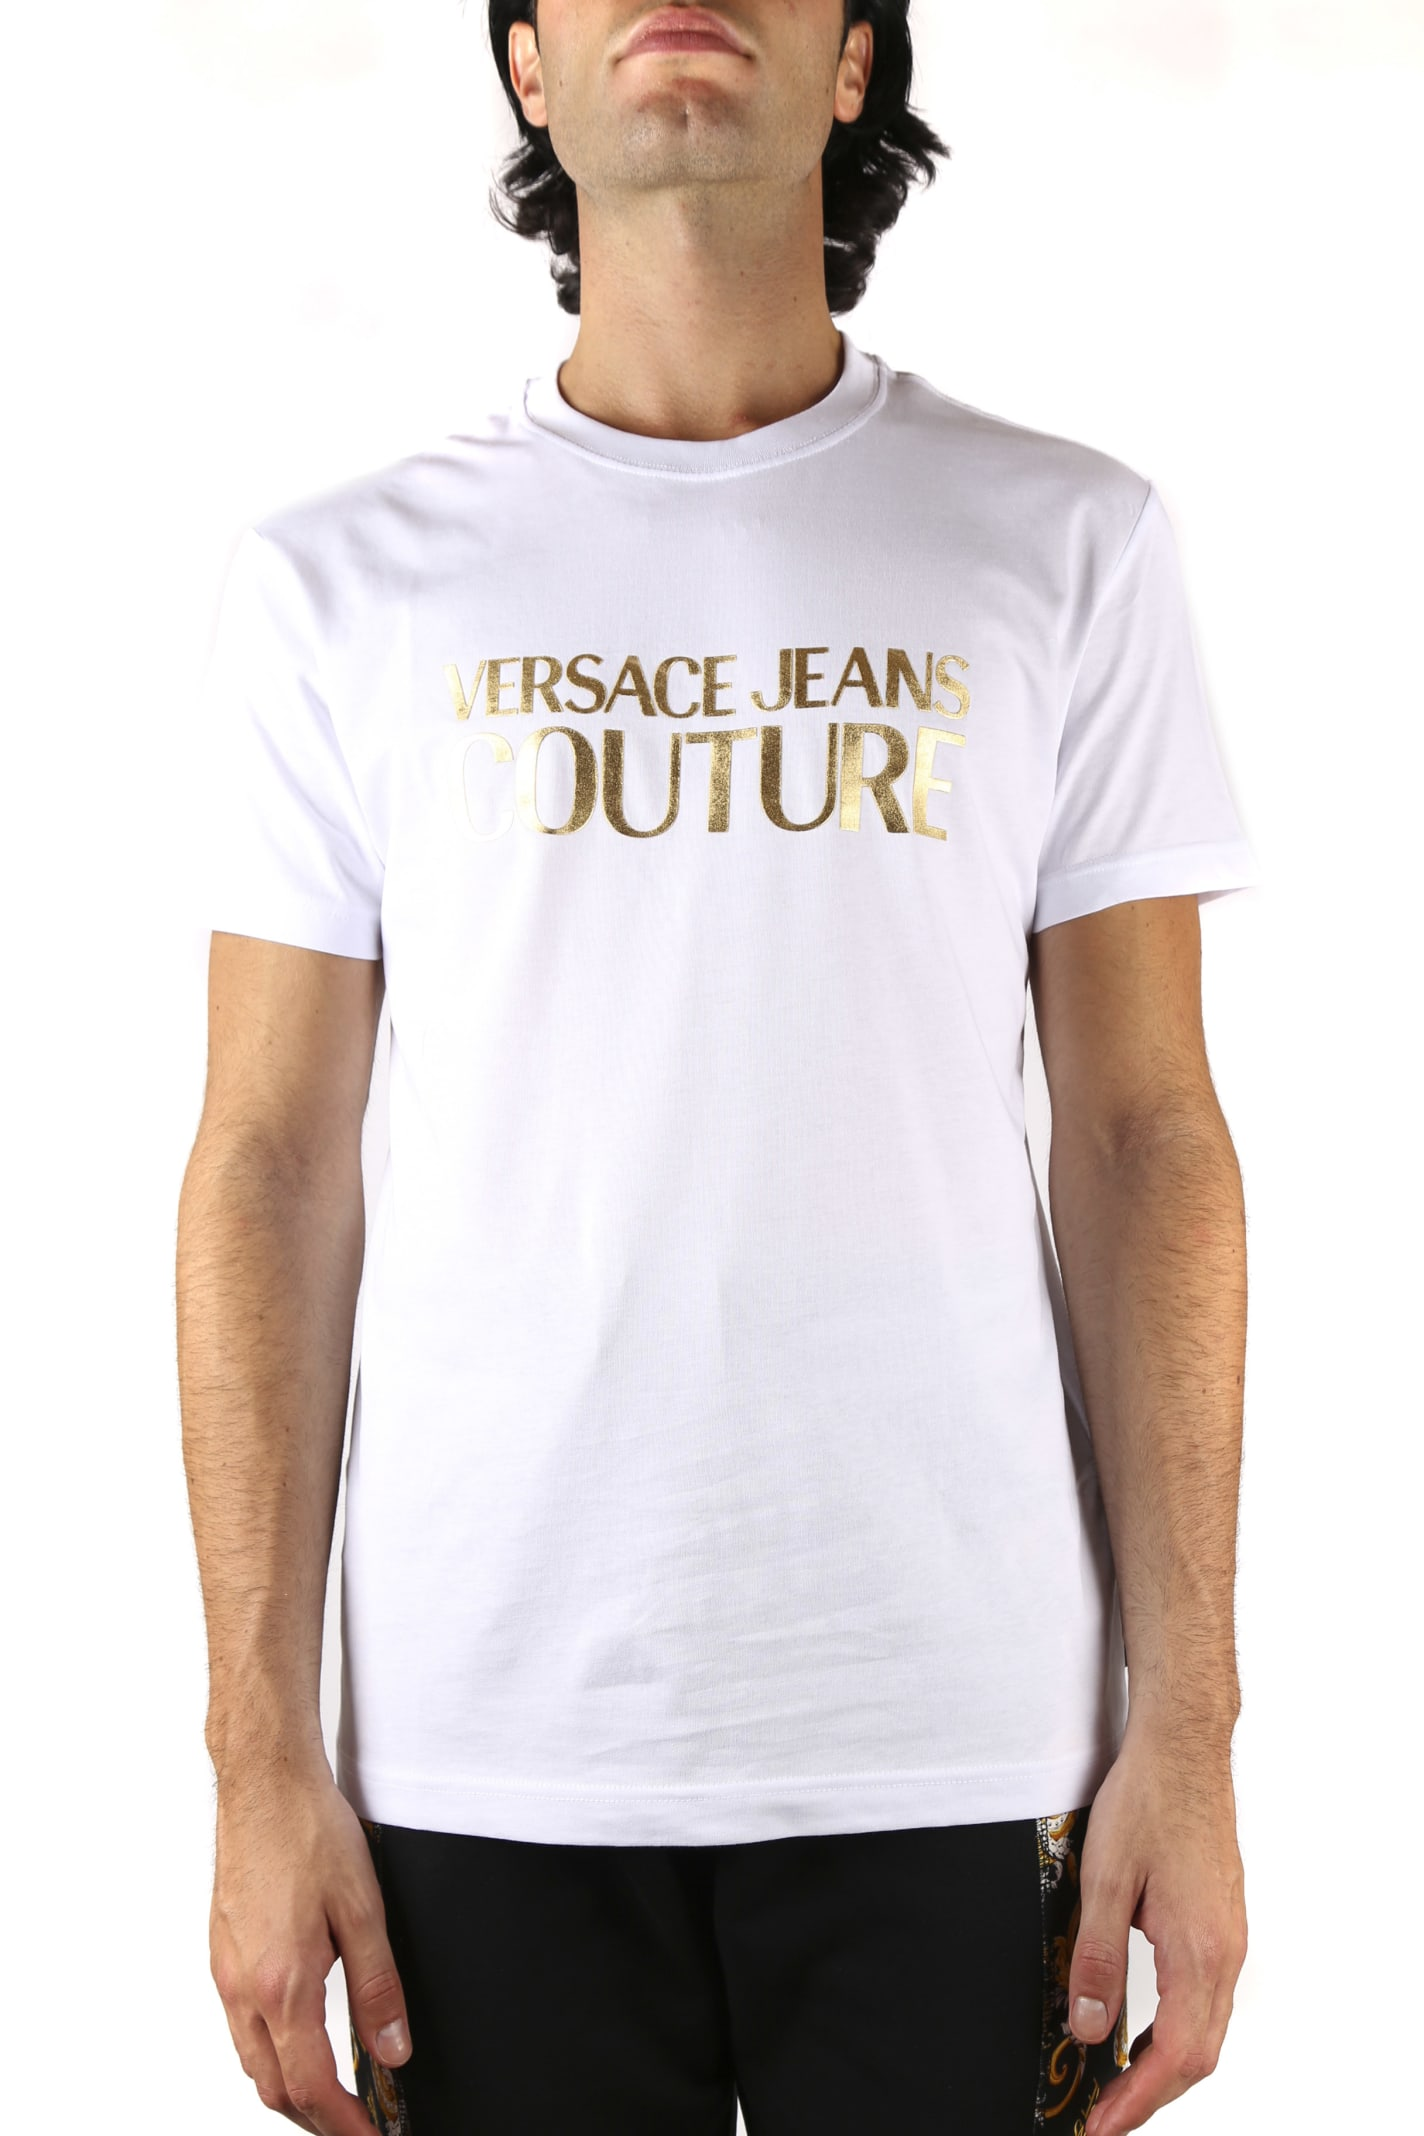 Versace Jeans Couture White Cotton T-shirt With Metallic Gold Logo